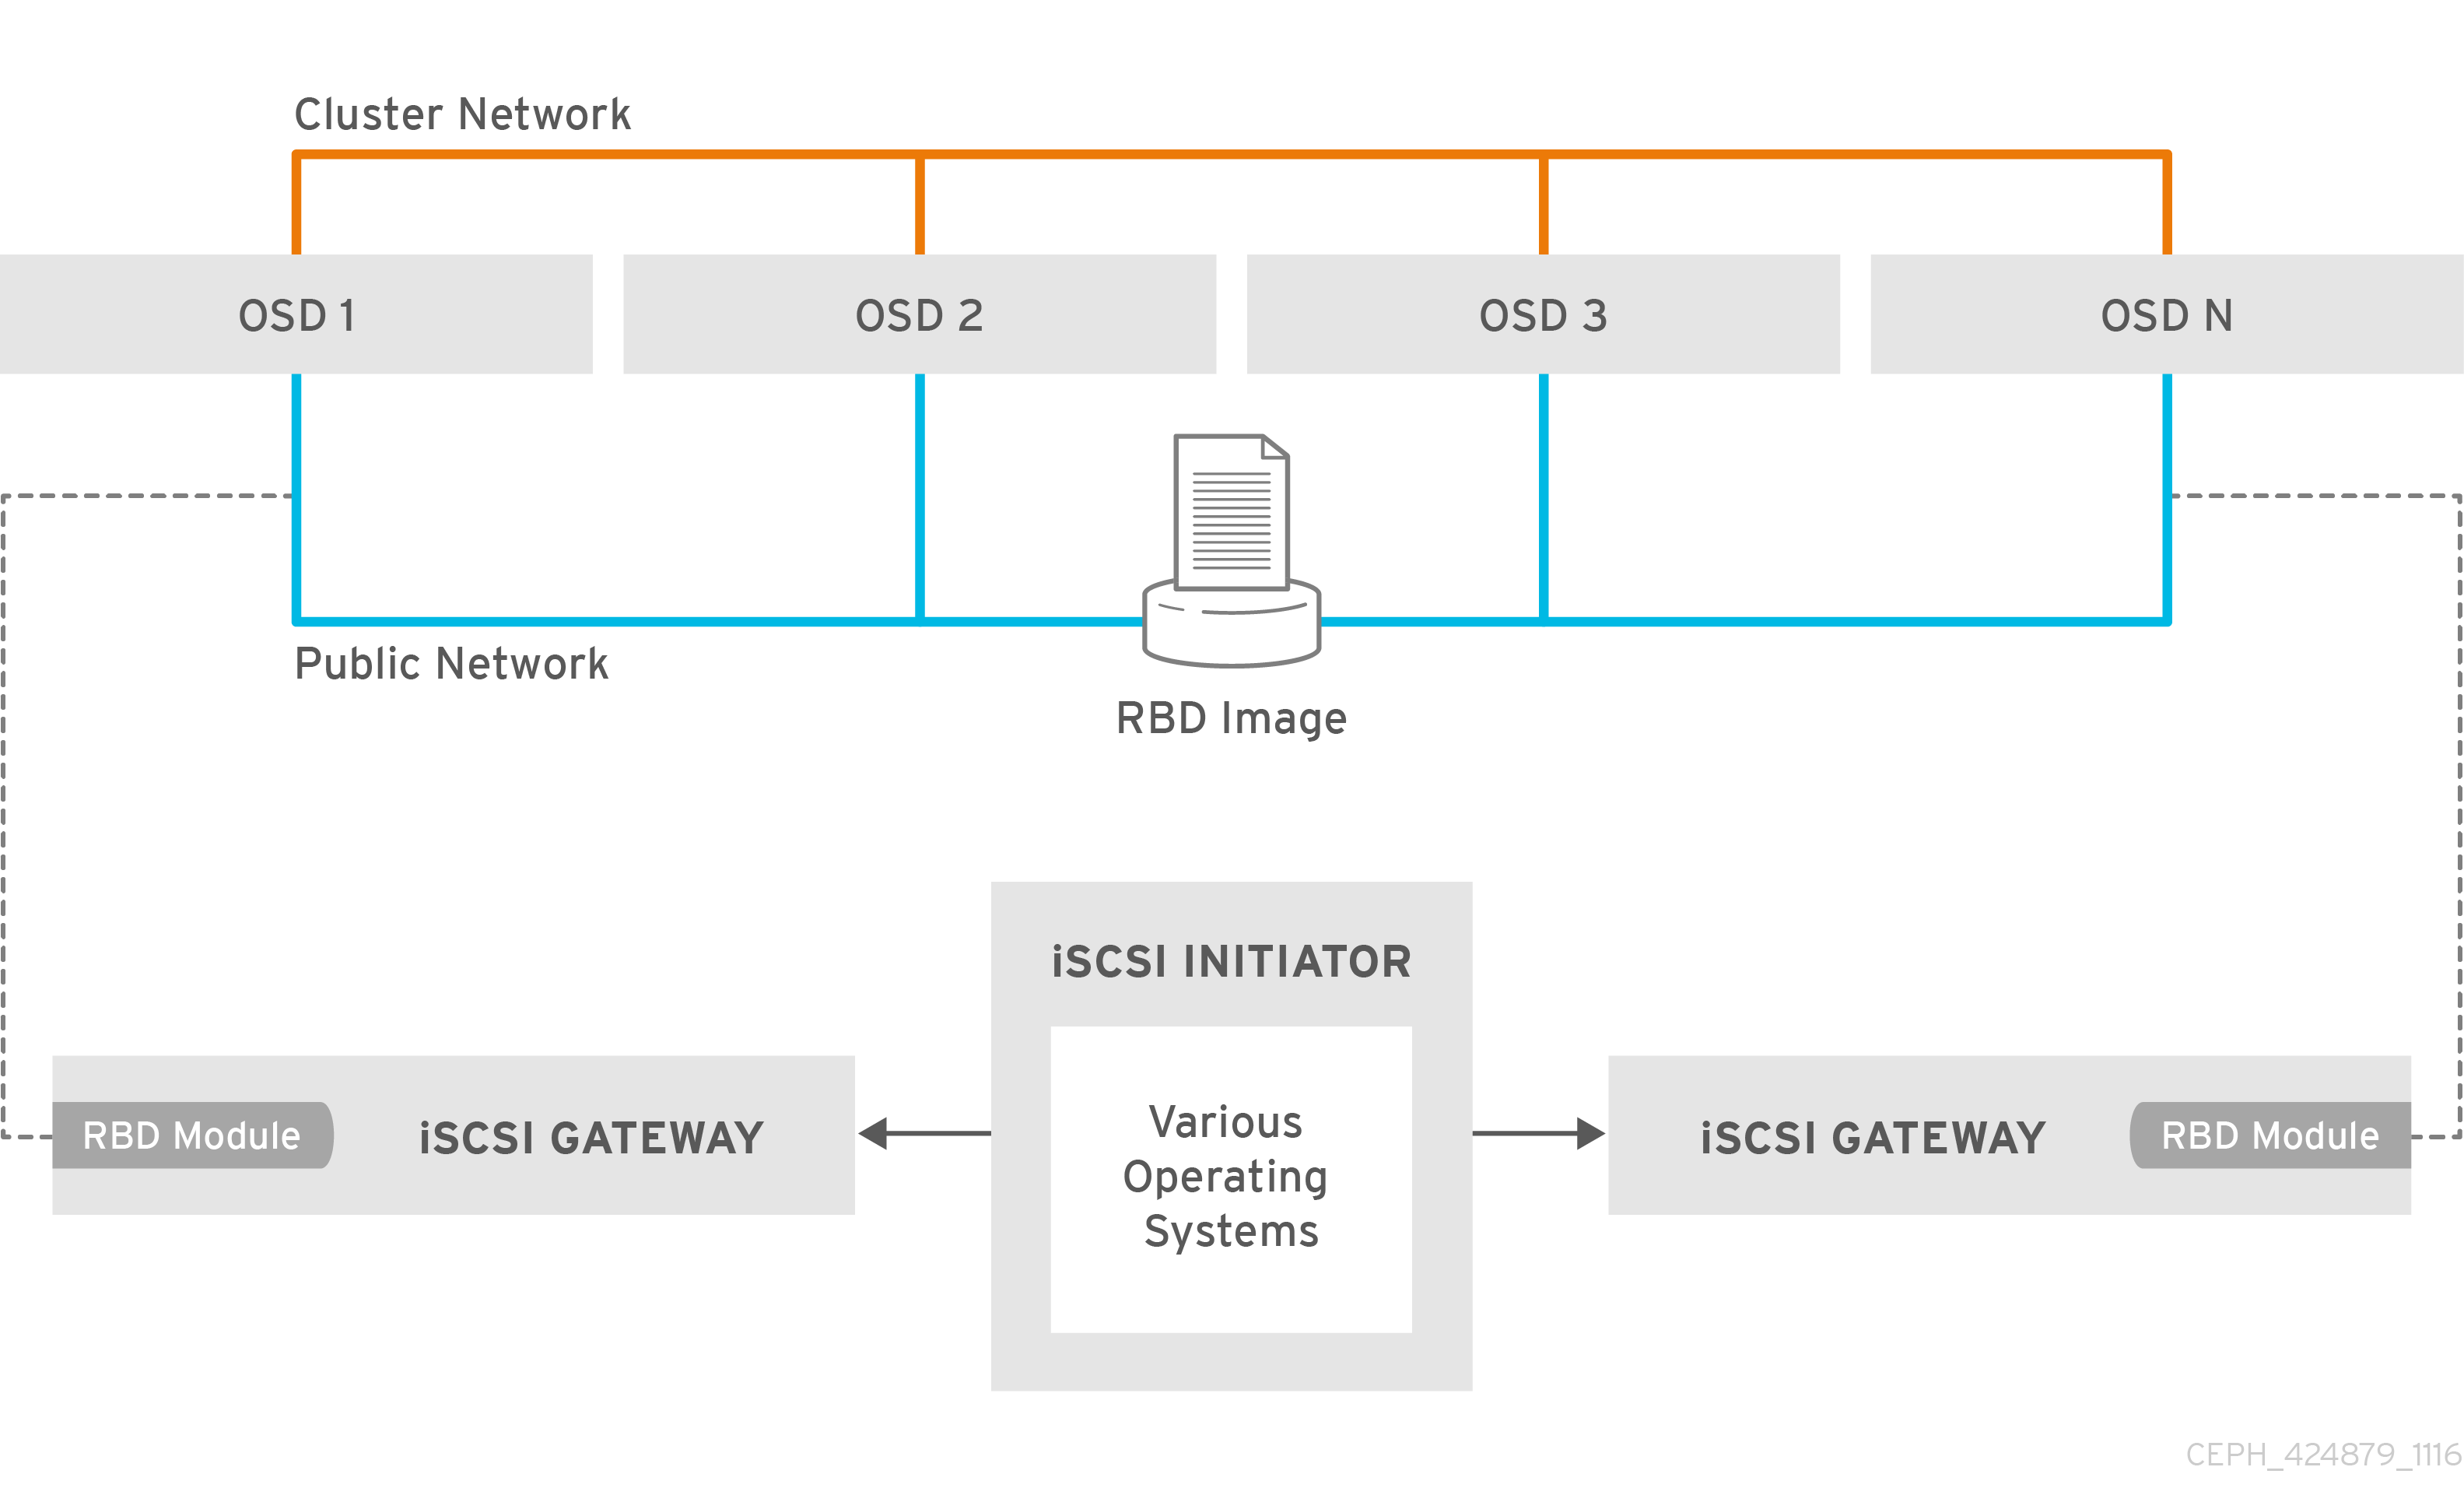 Chapter 8 Using An Iscsi Gateway Red Hat Customer Portal Galaxy Note 3 Block Diagram Ceph Ha 424879 1116 Ece 01